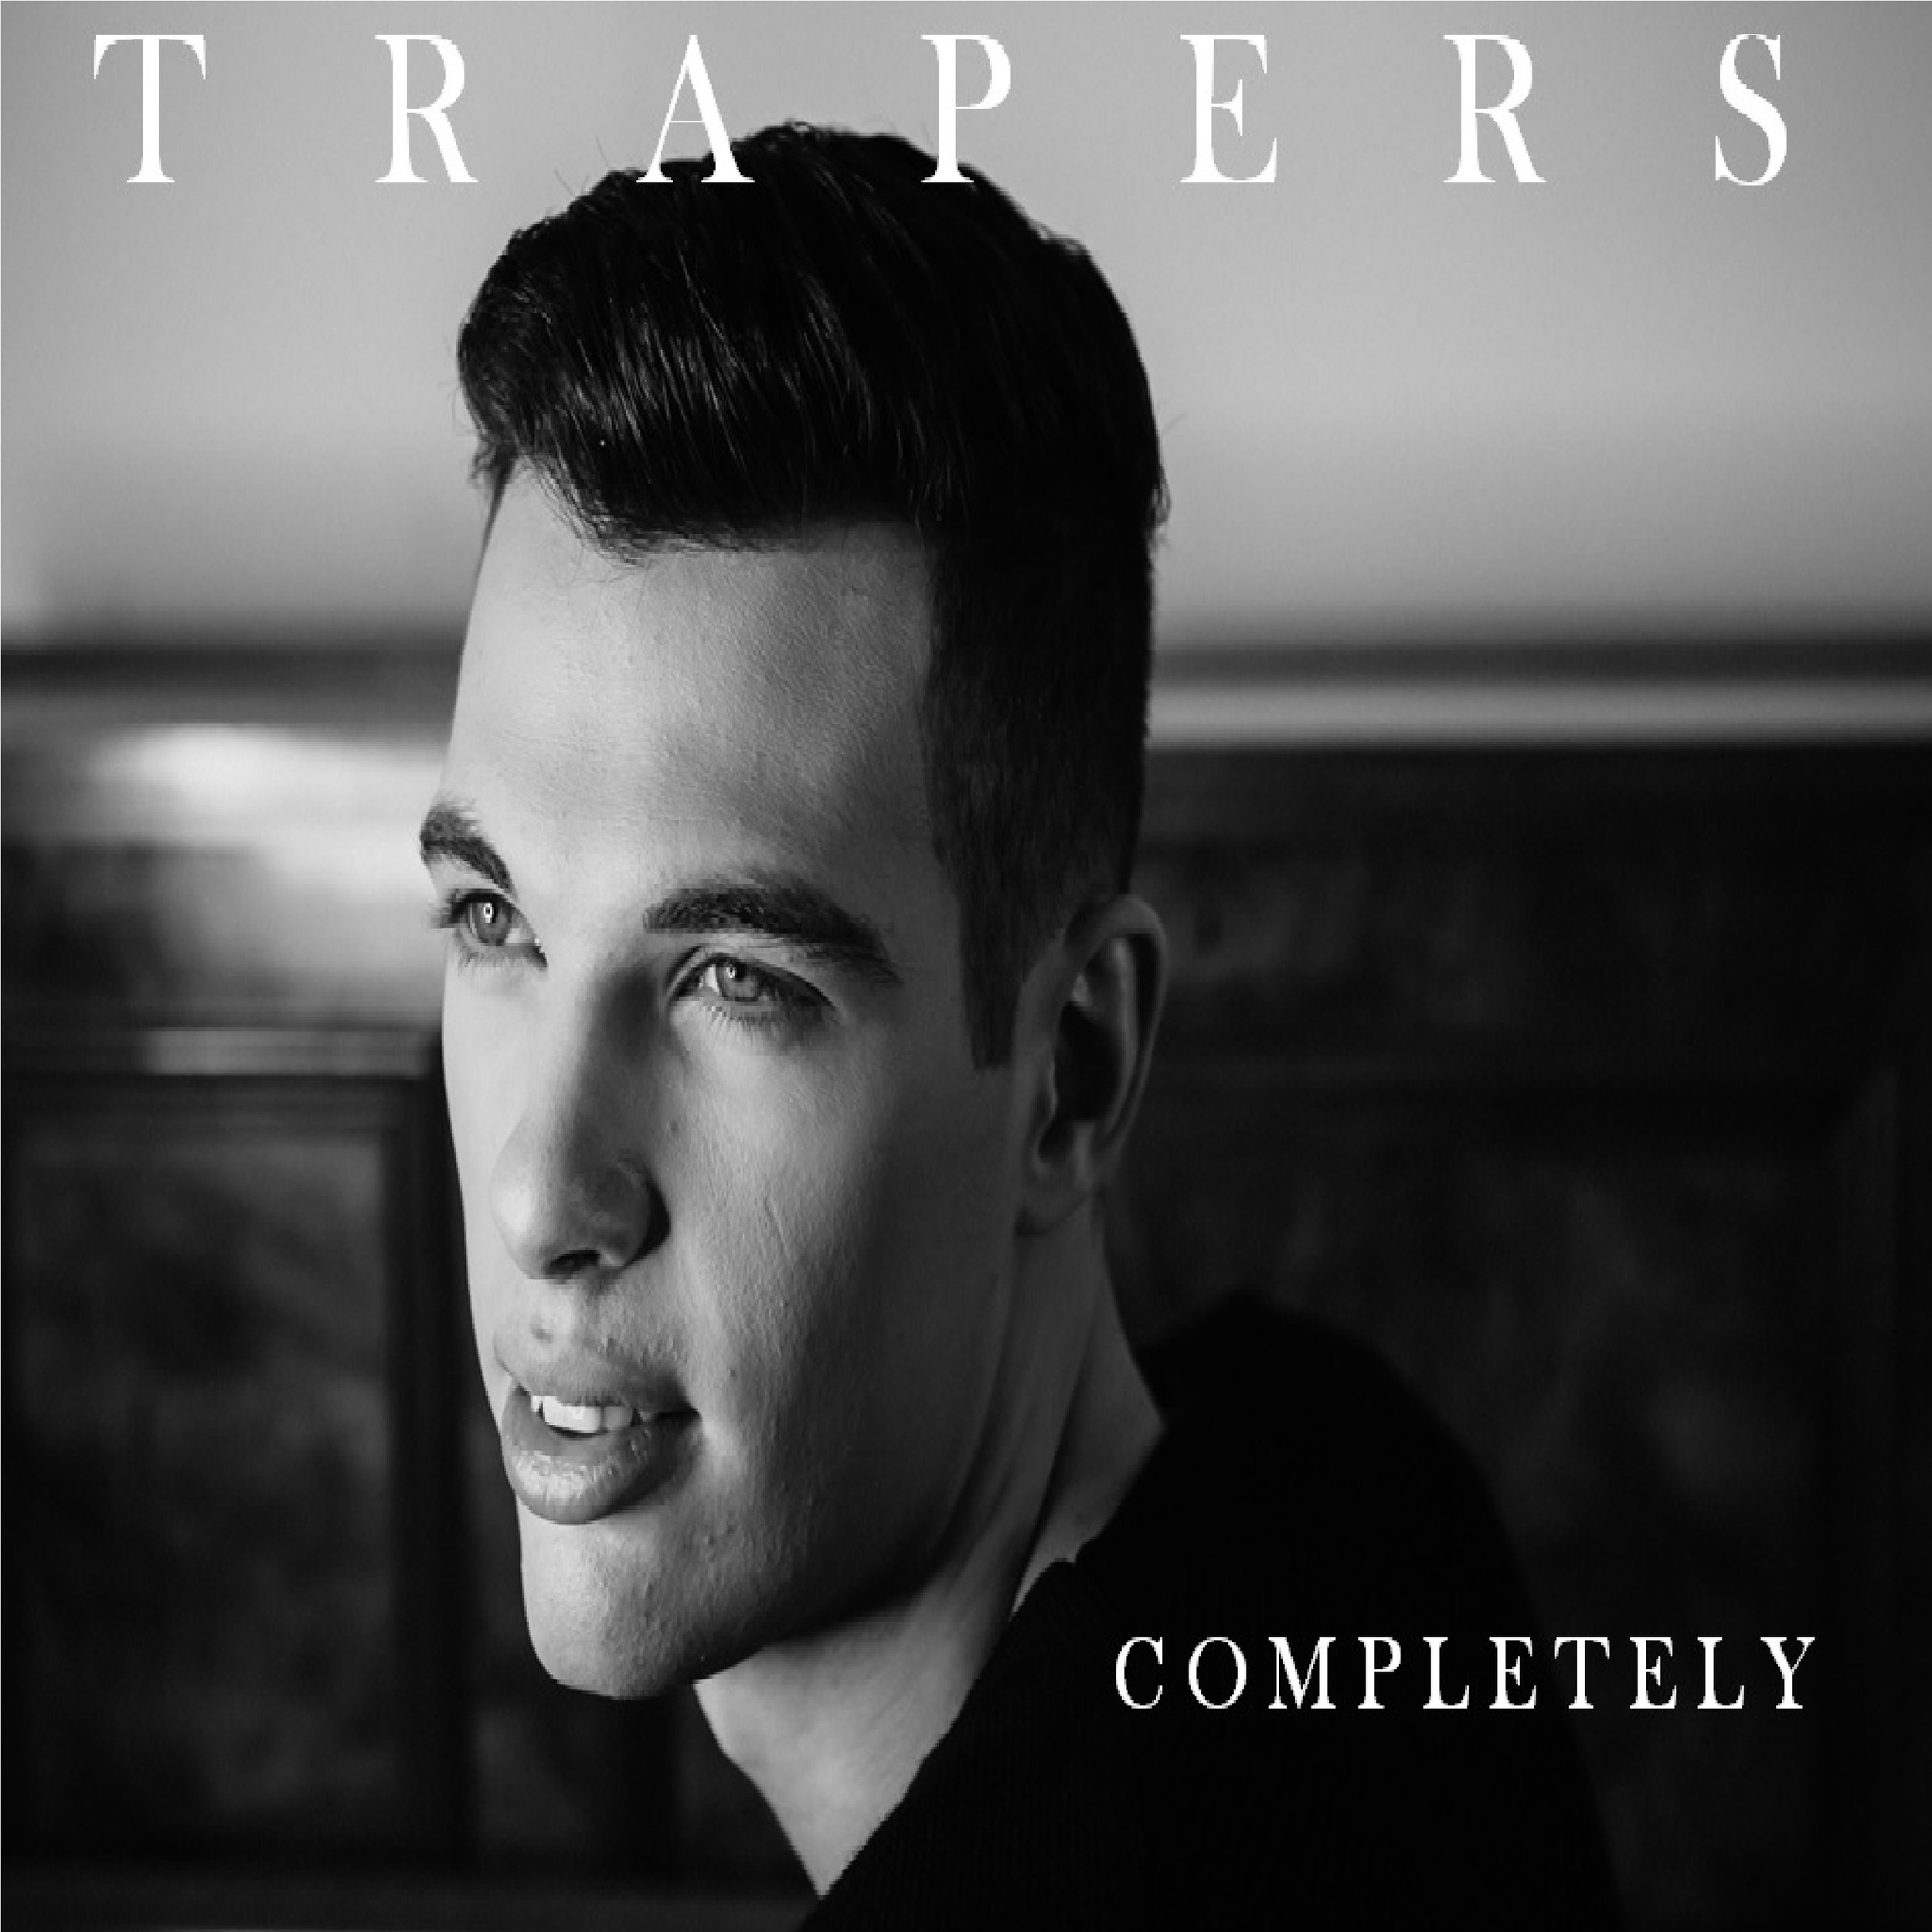 Completely - TRAPERS